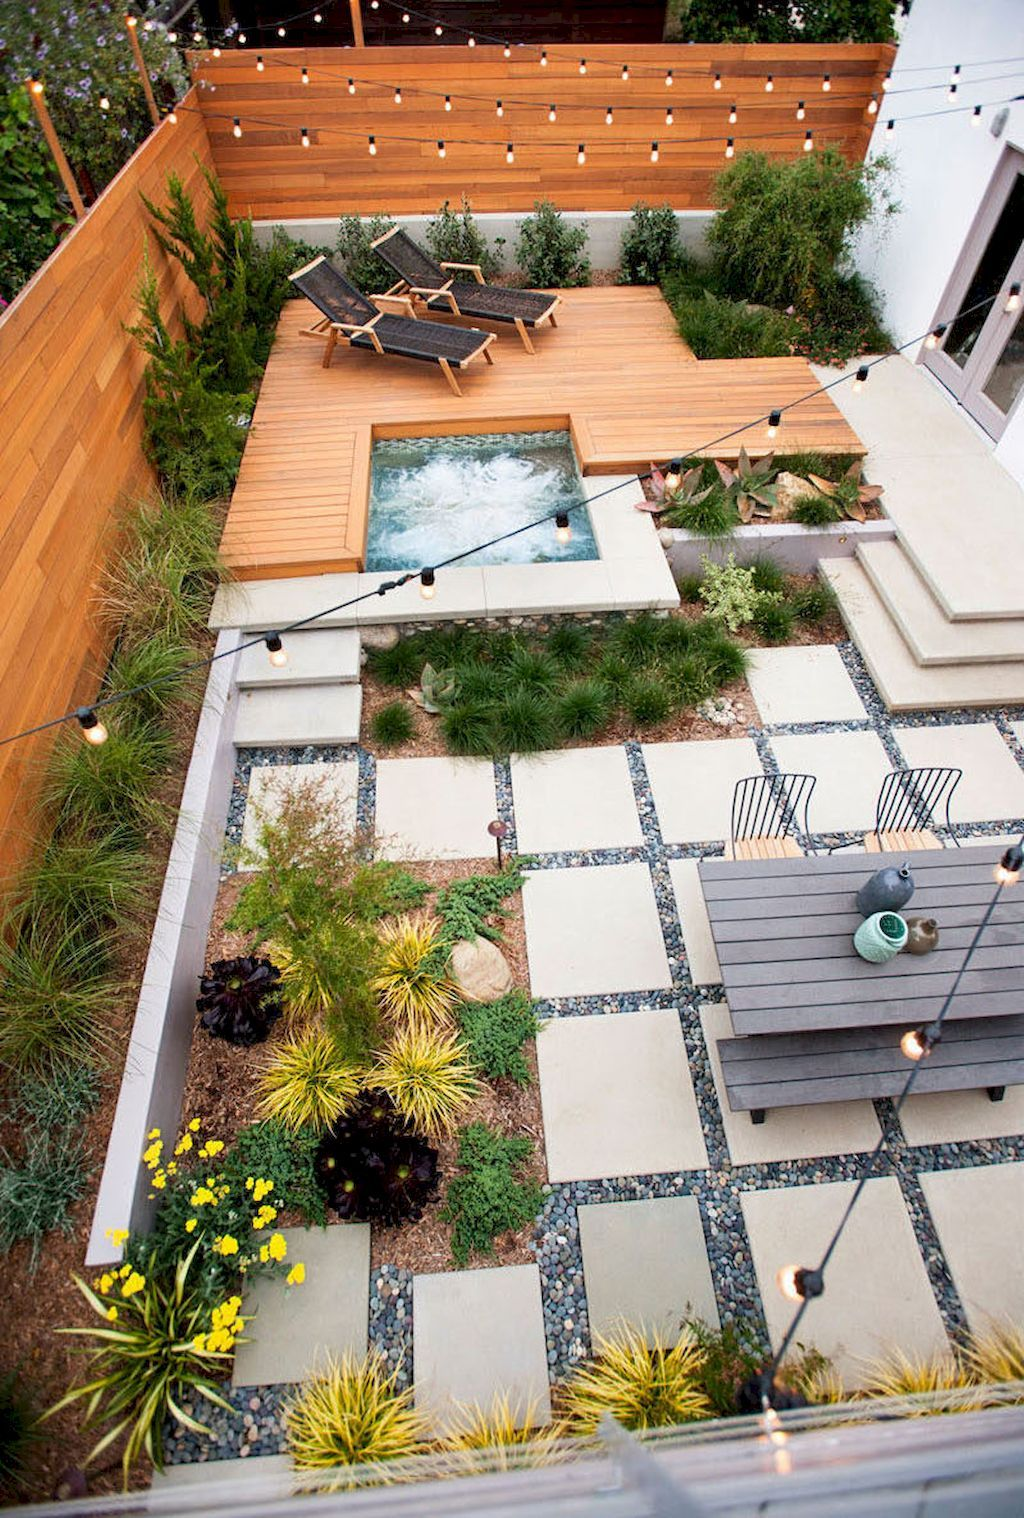 Small Backyard Landscaping Ideas on a Budget 20   The Day Collections